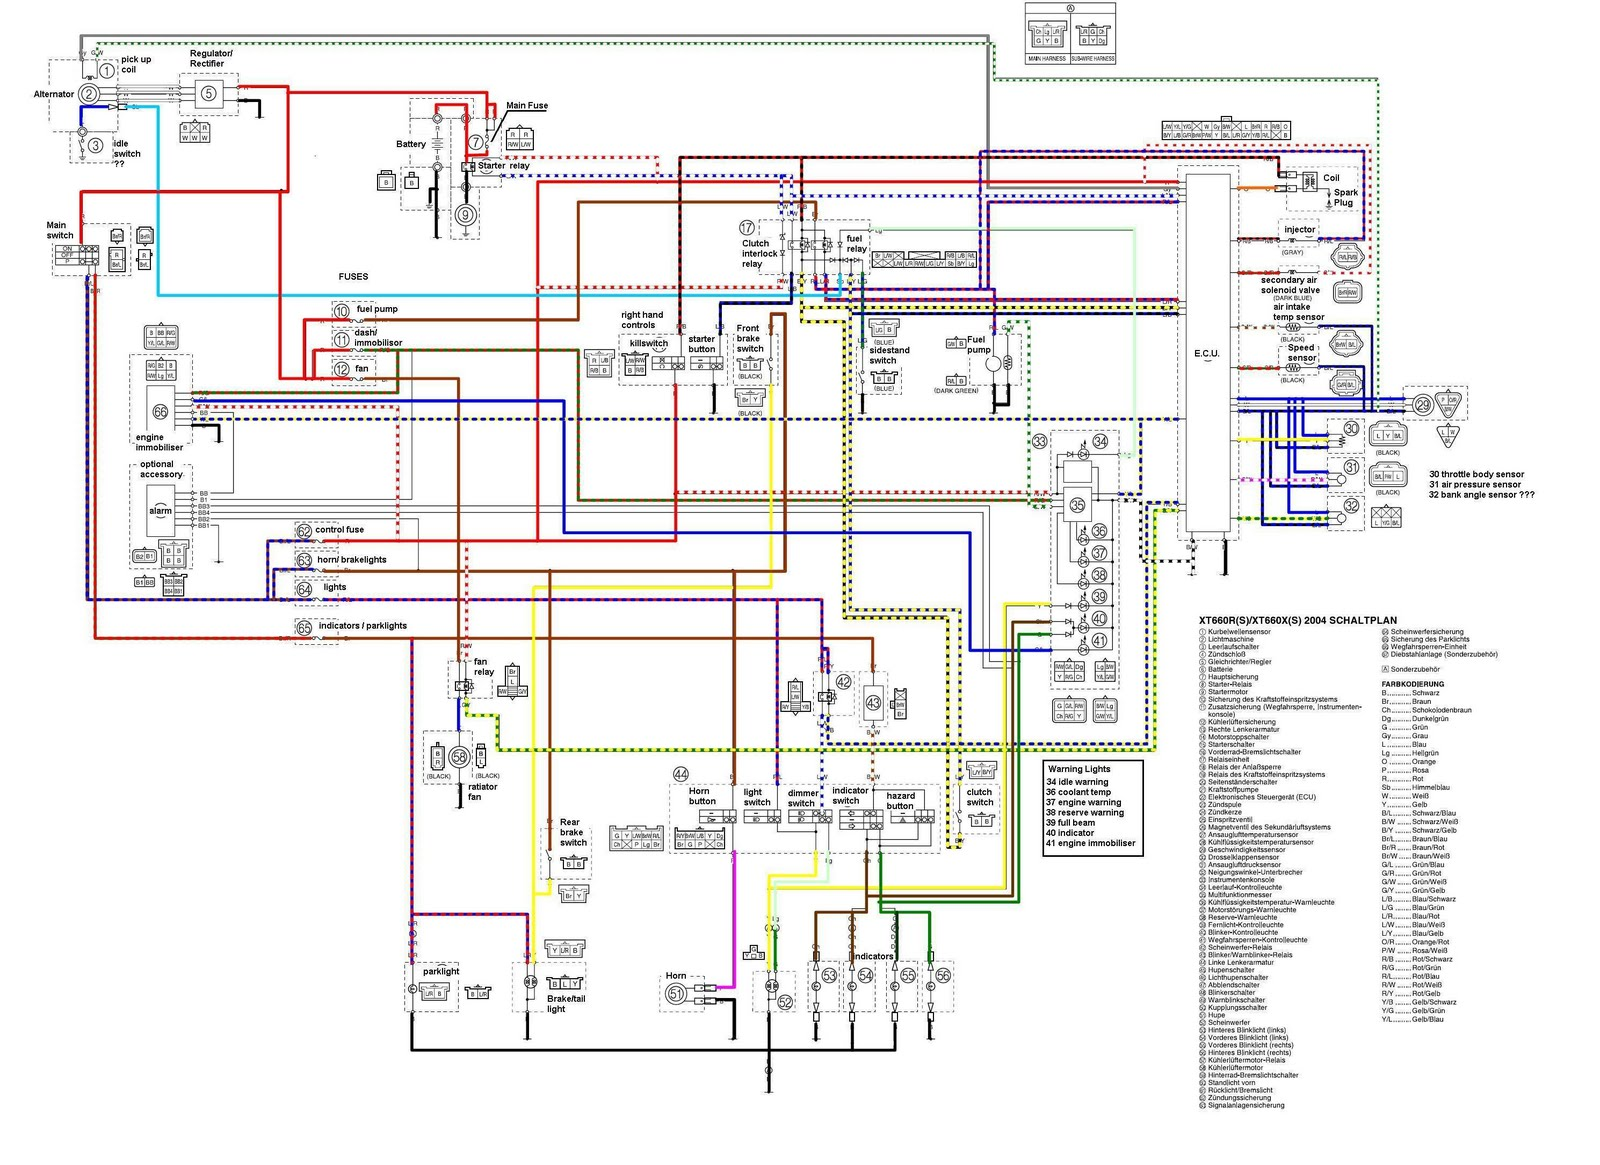 Yamaha Mio 125 Wiring Diagram 94 Ford Explorer Xlt Radio Engine Circuit Maker